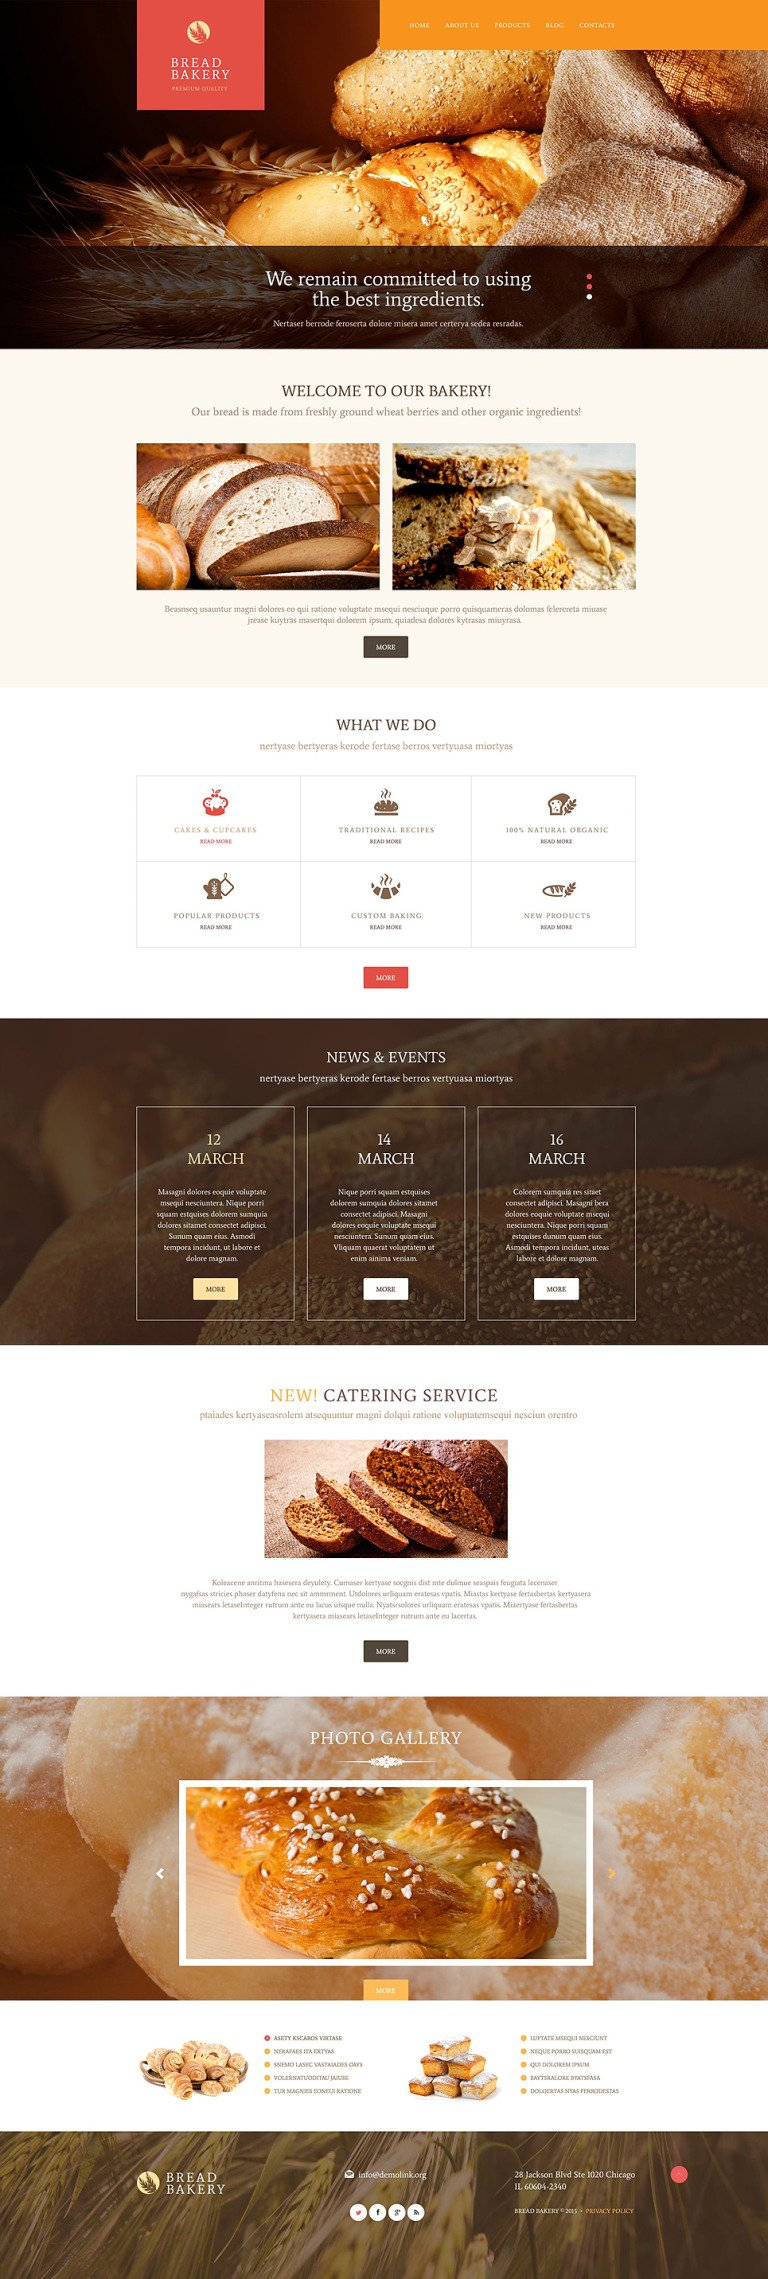 Pastries WordPress Theme New Screenshots BIG